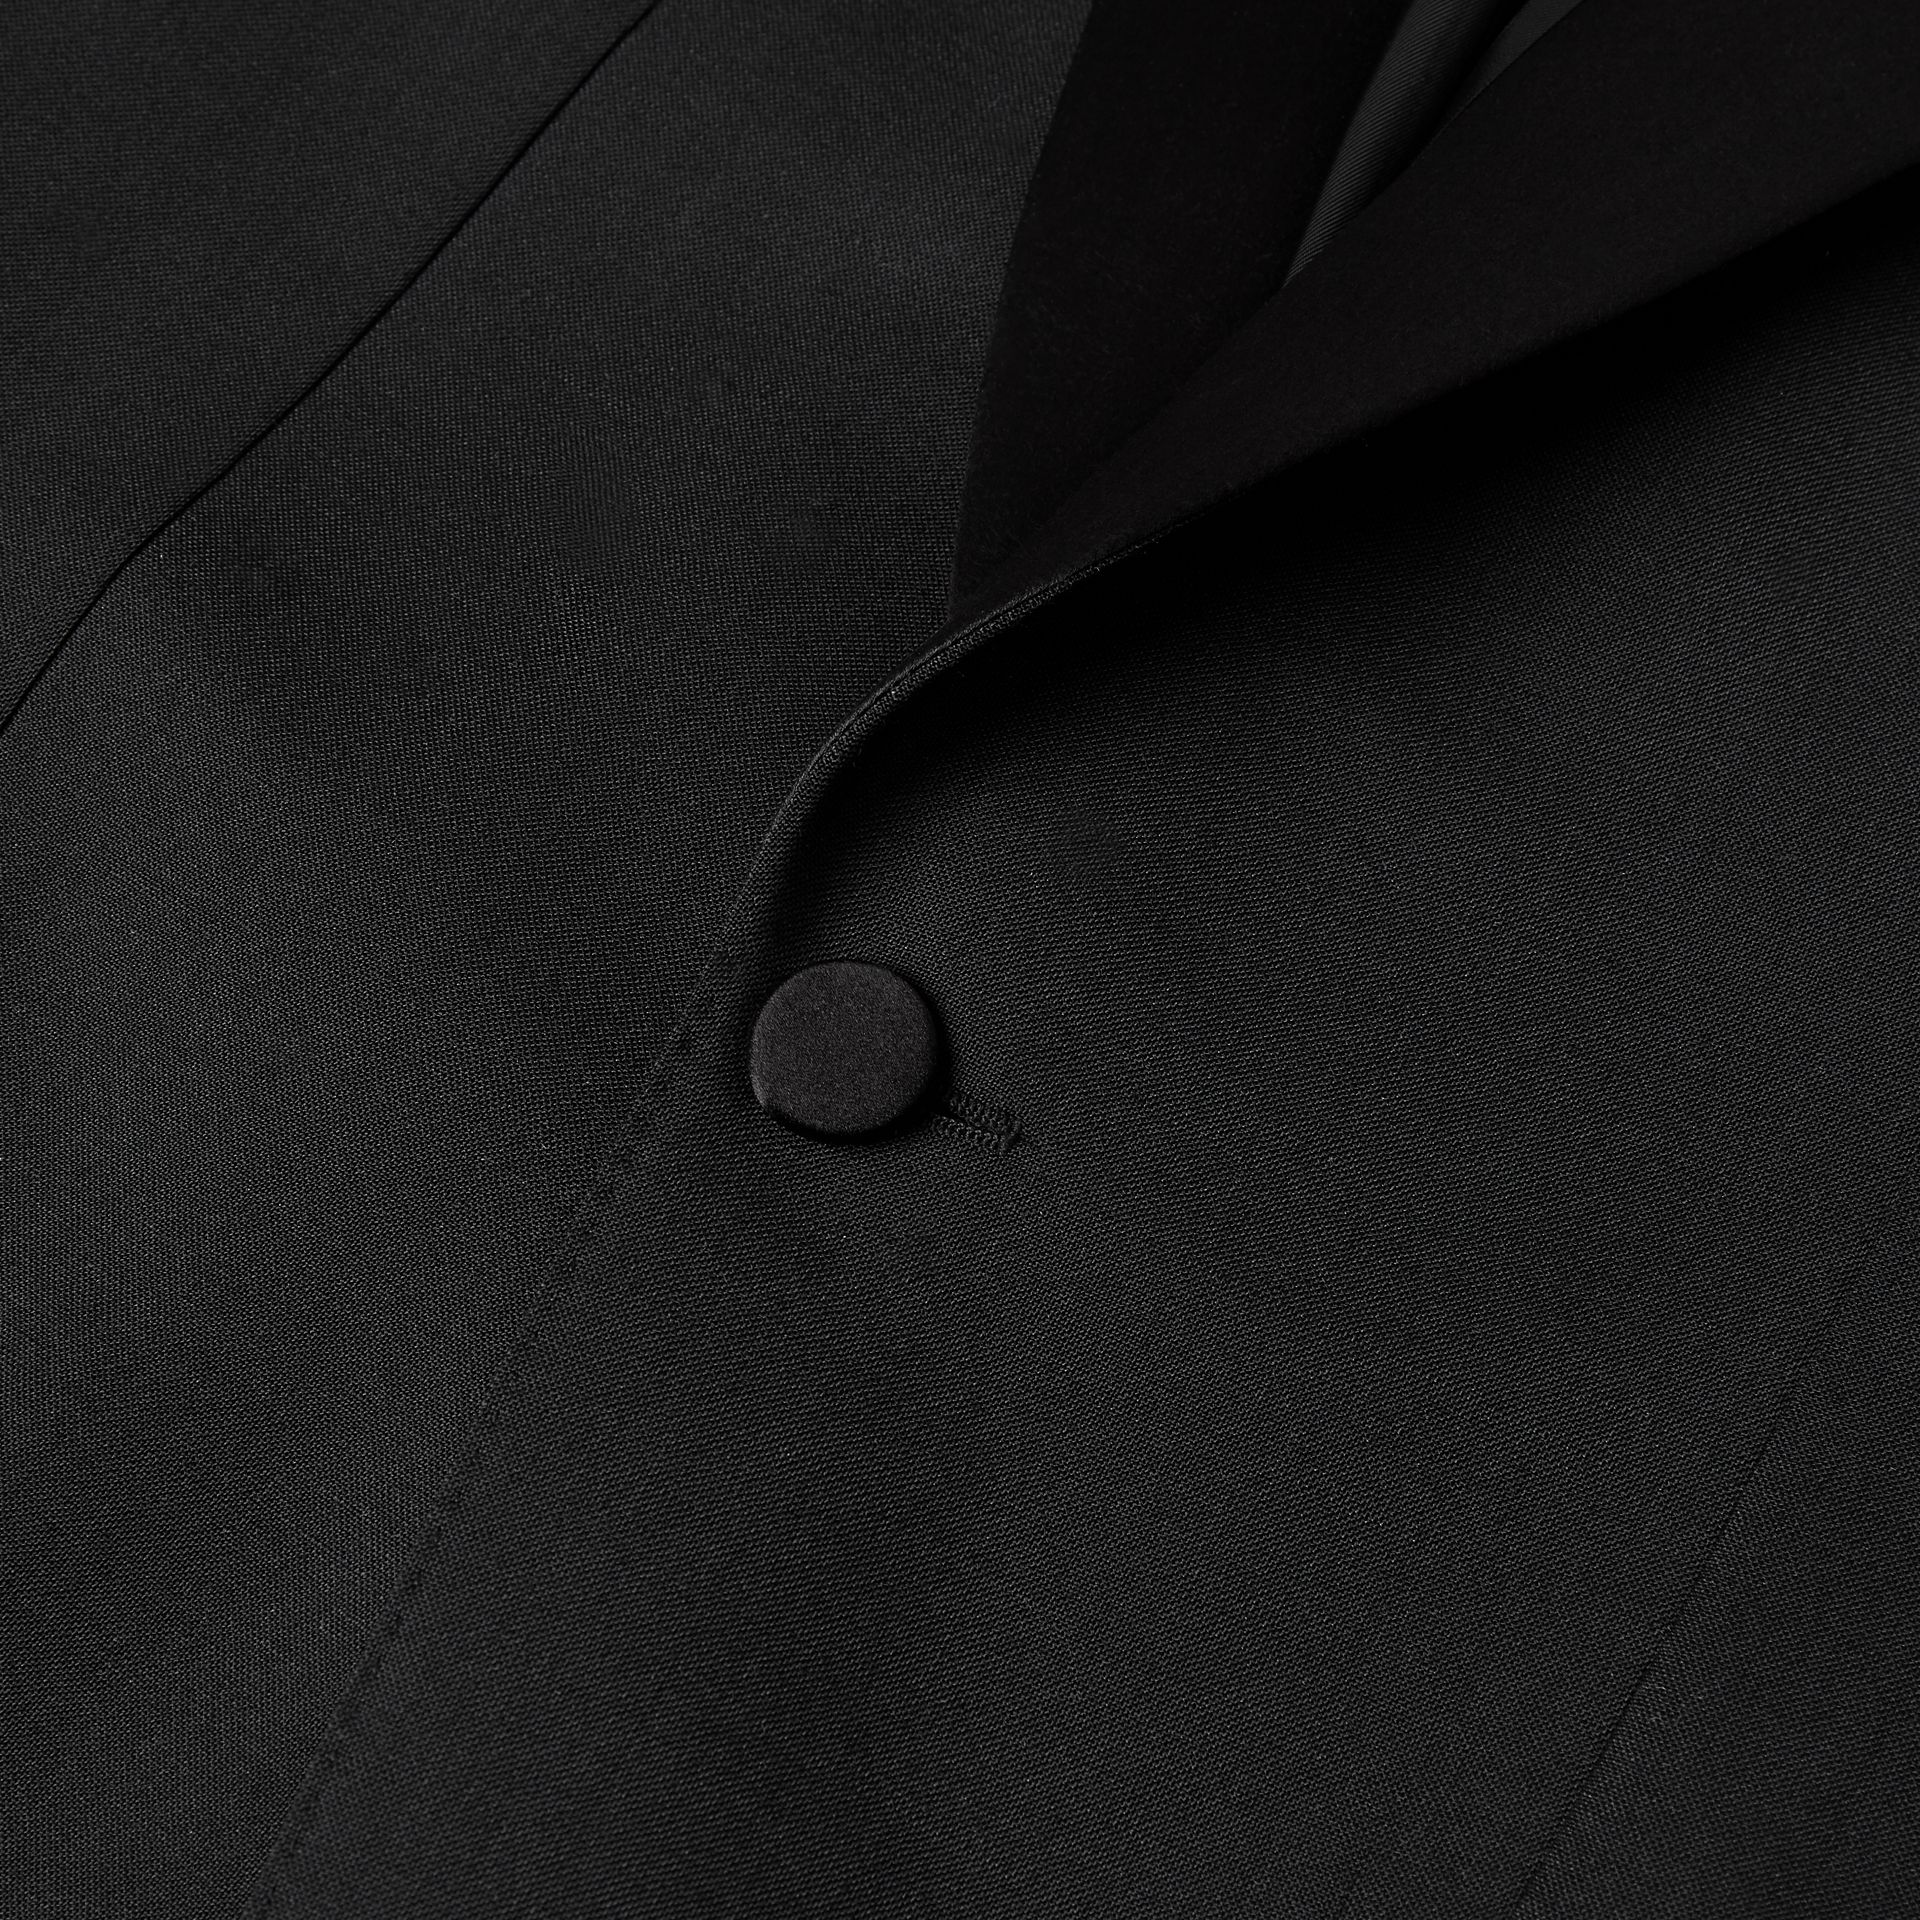 English Fit Mohair Wool Tuxedo in Black - Men | Burberry - gallery image 8